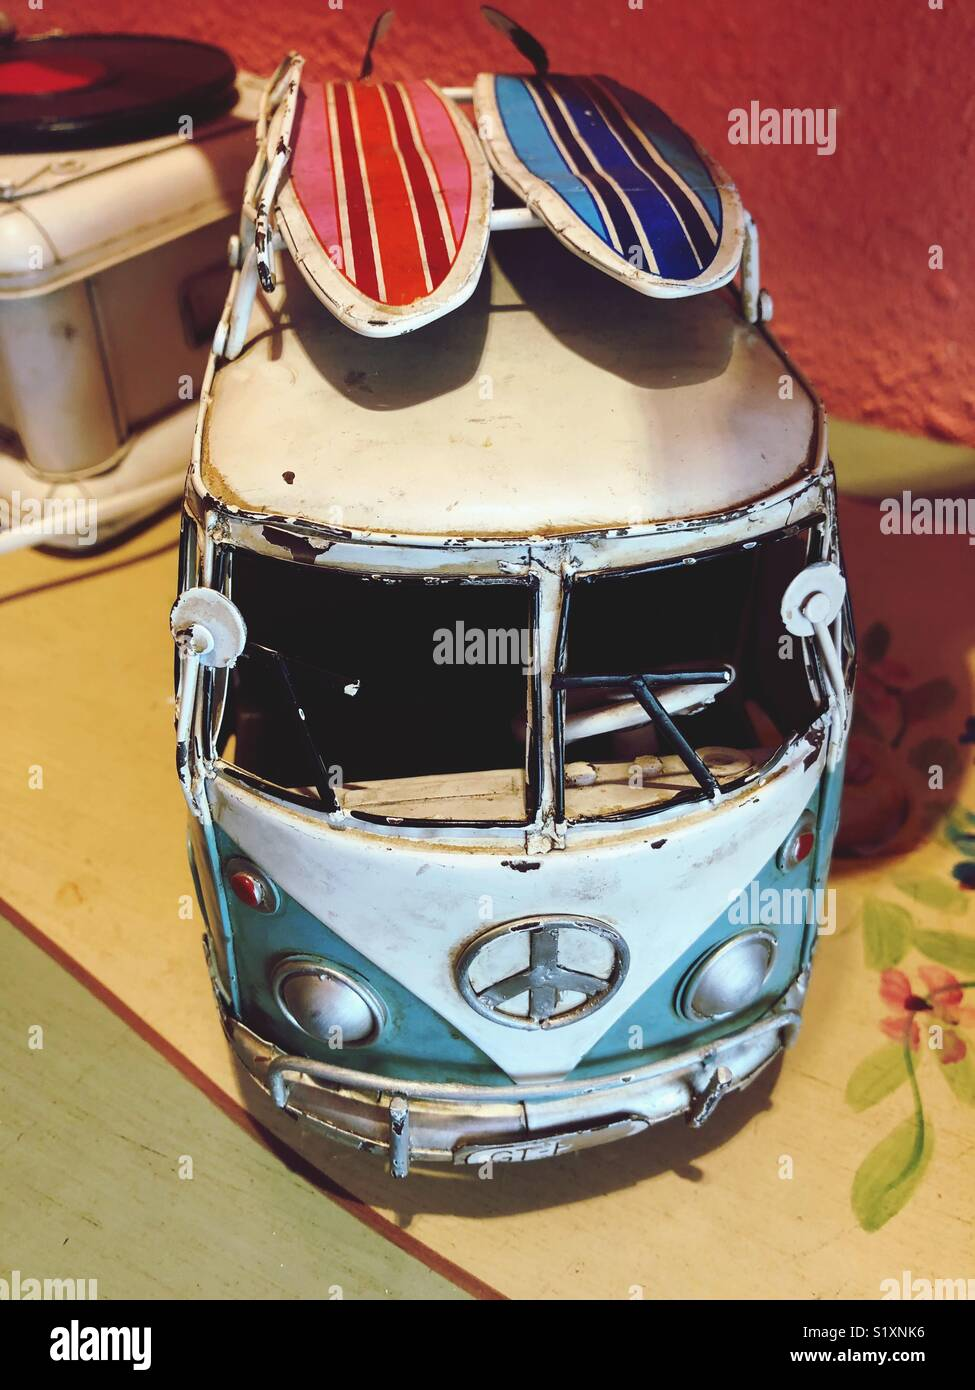 Vintage VW bus with a peace sign as a decoration. - Stock Image